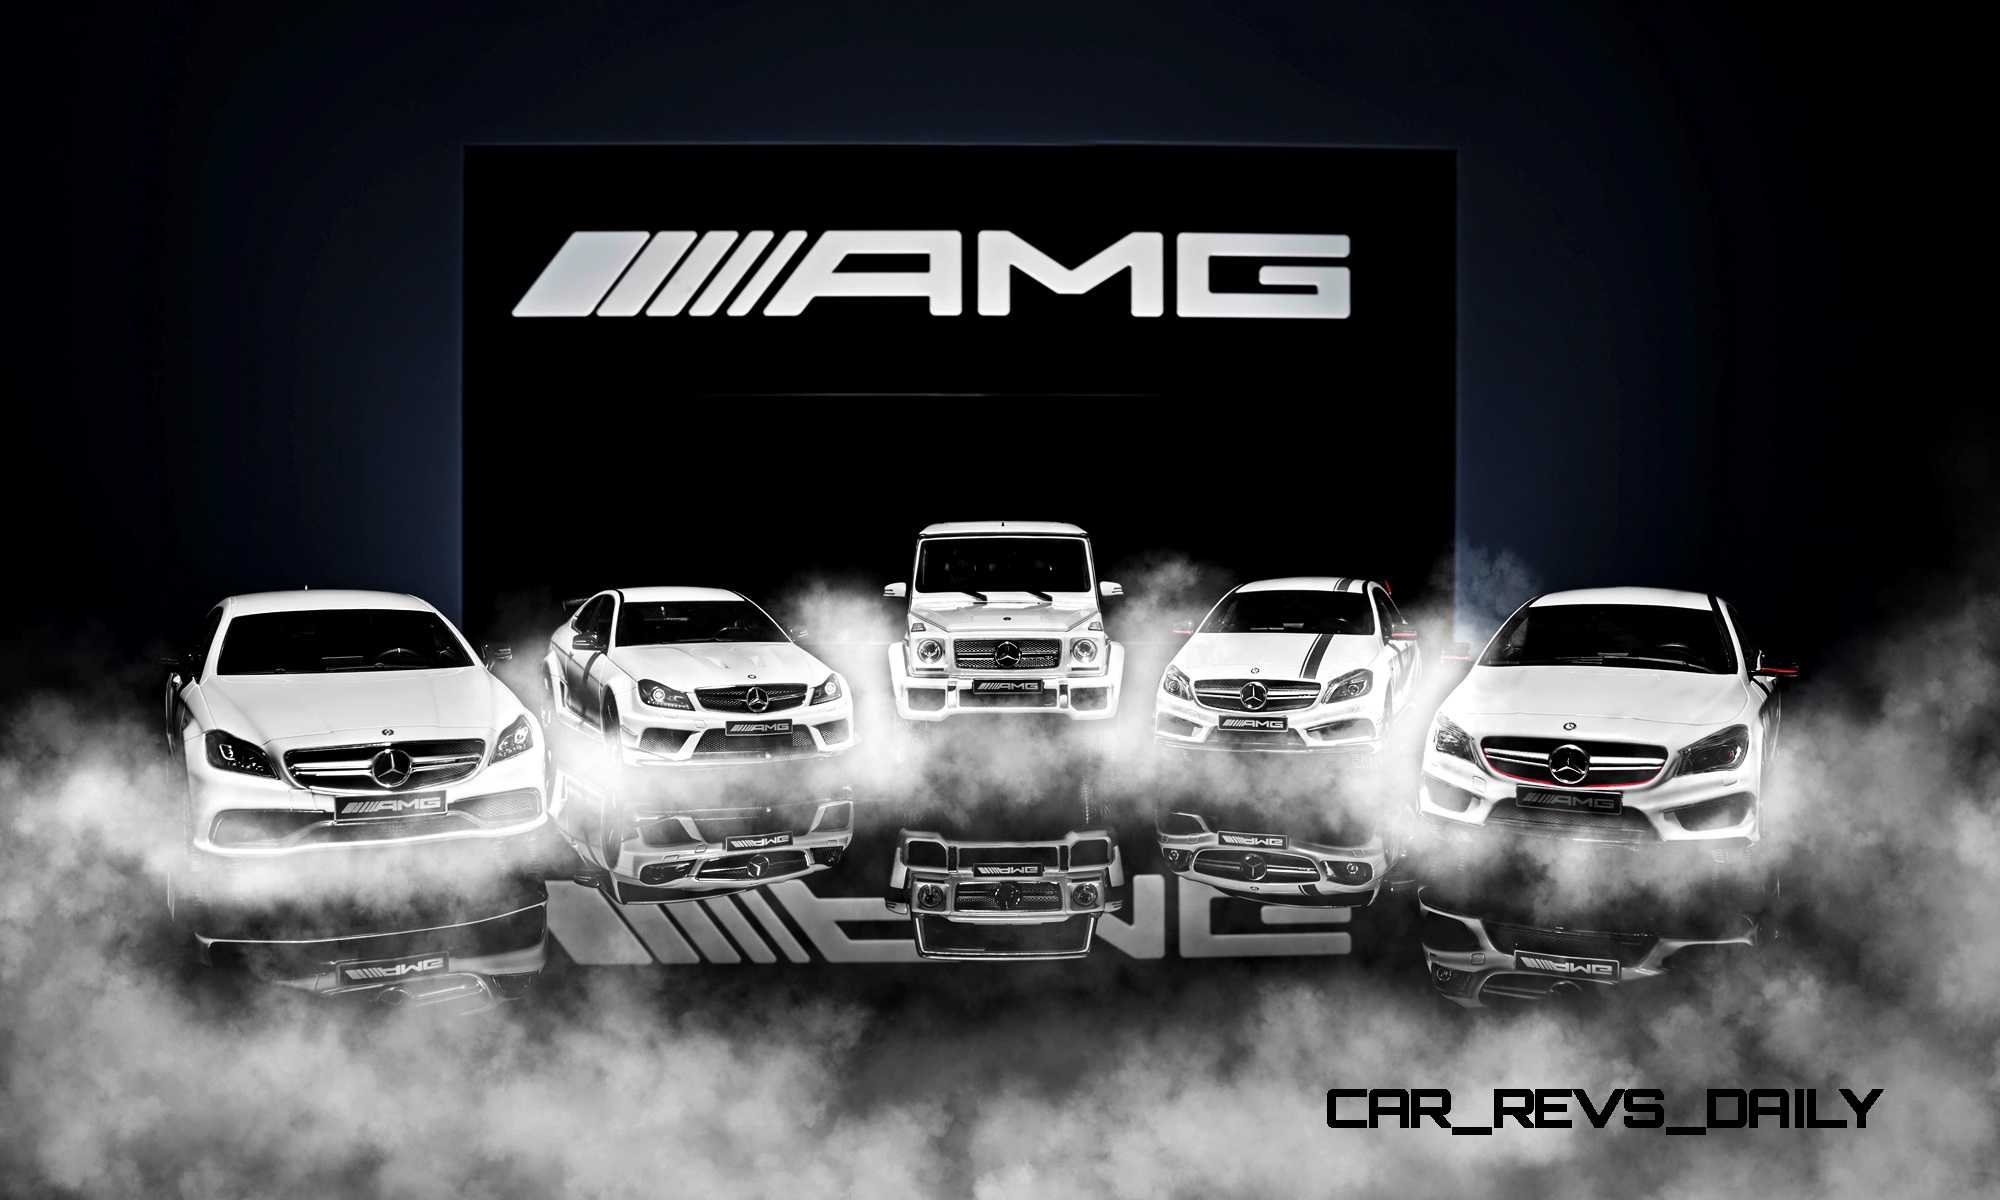 Mercedes AMG Signifies The Top Sport Mode Of The Mercedes Benz Line Up. For  Many, These Exclusive Sport Cars Remain A Dream. Now There Is The Chance To  Park ...